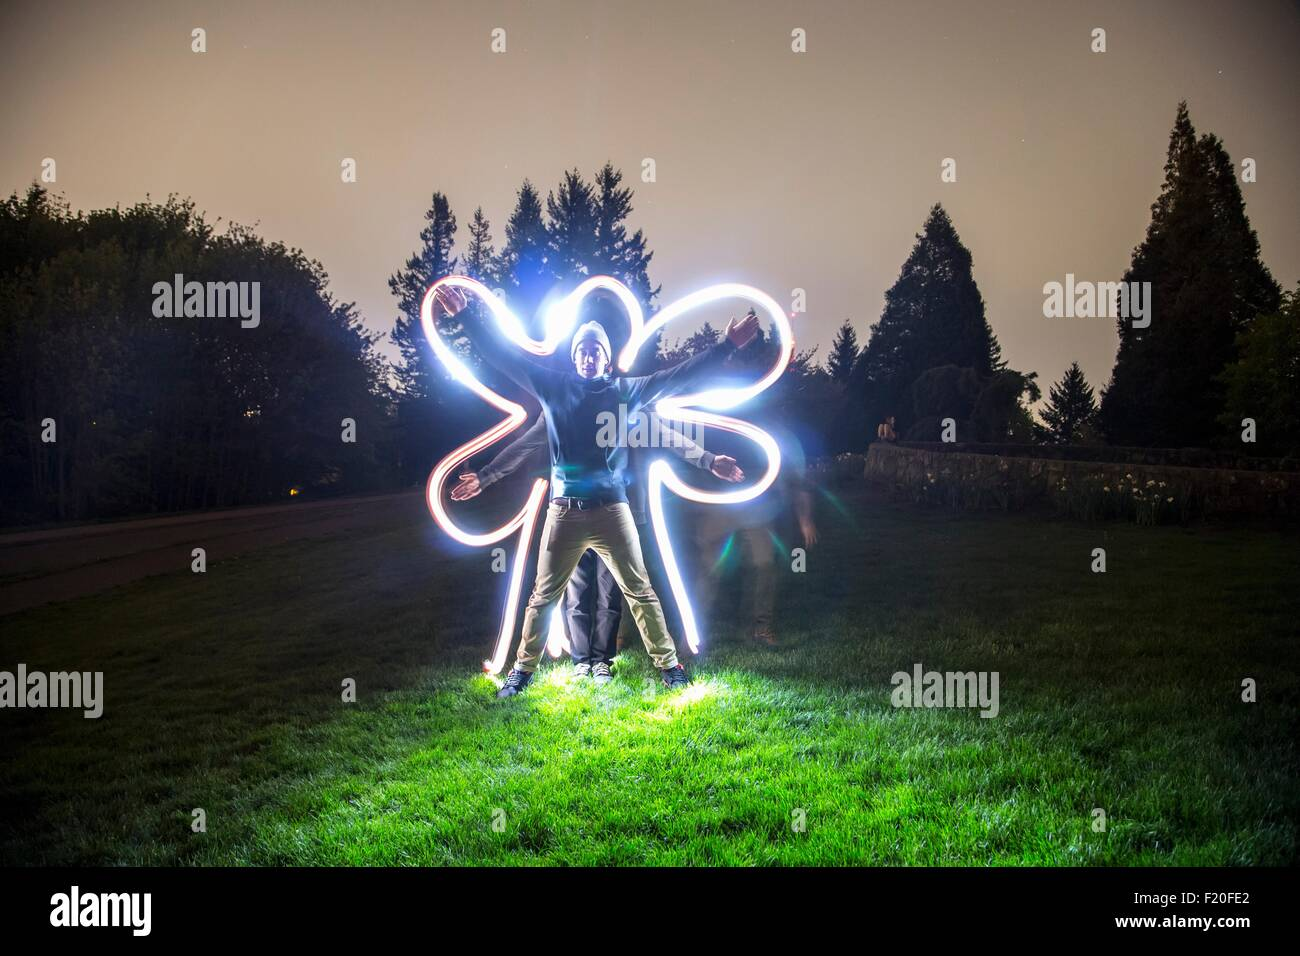 Two men standing together in field at dusk, creating star shape with bodies, friend tracing body shape with light - Stock Image